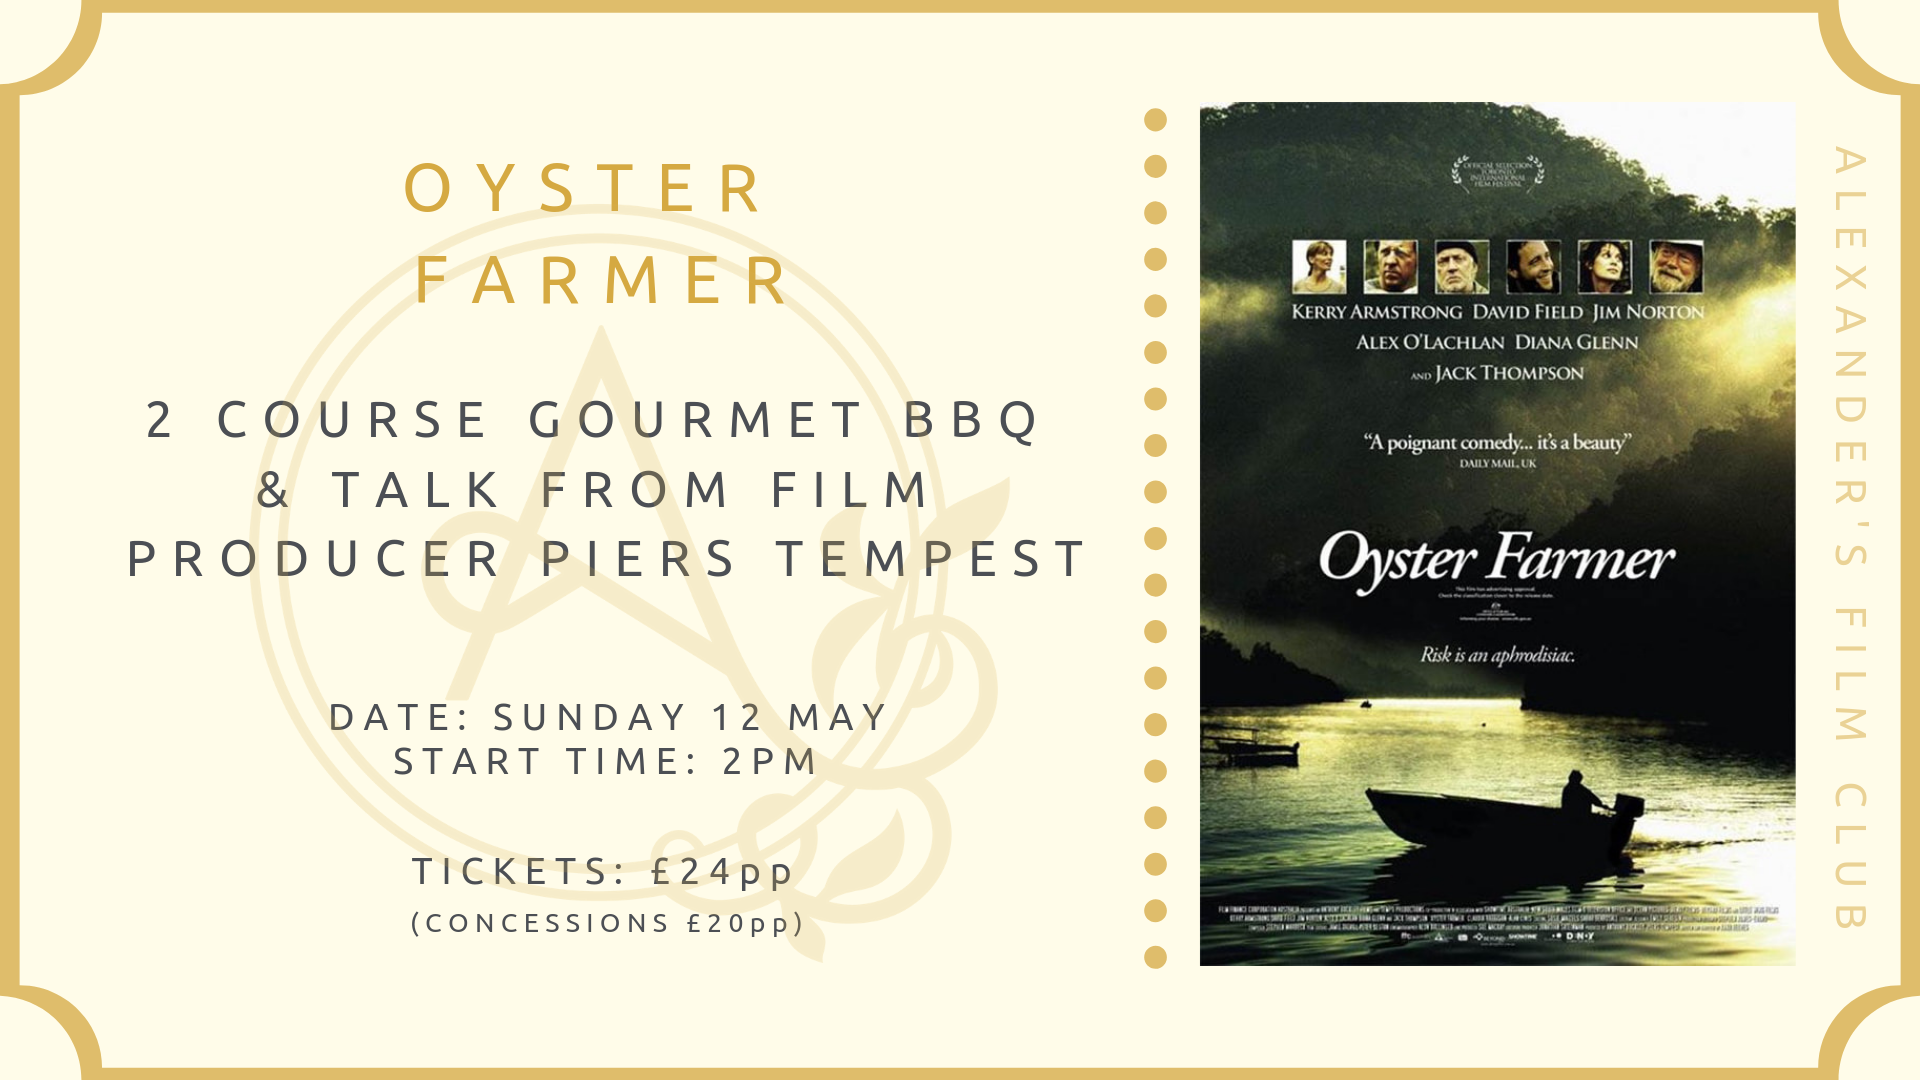 The Alexander's Film Club - 'Oyster Farmer' Screening, Gourmet BBQ & Introduction from Film Producer Piers Tempest